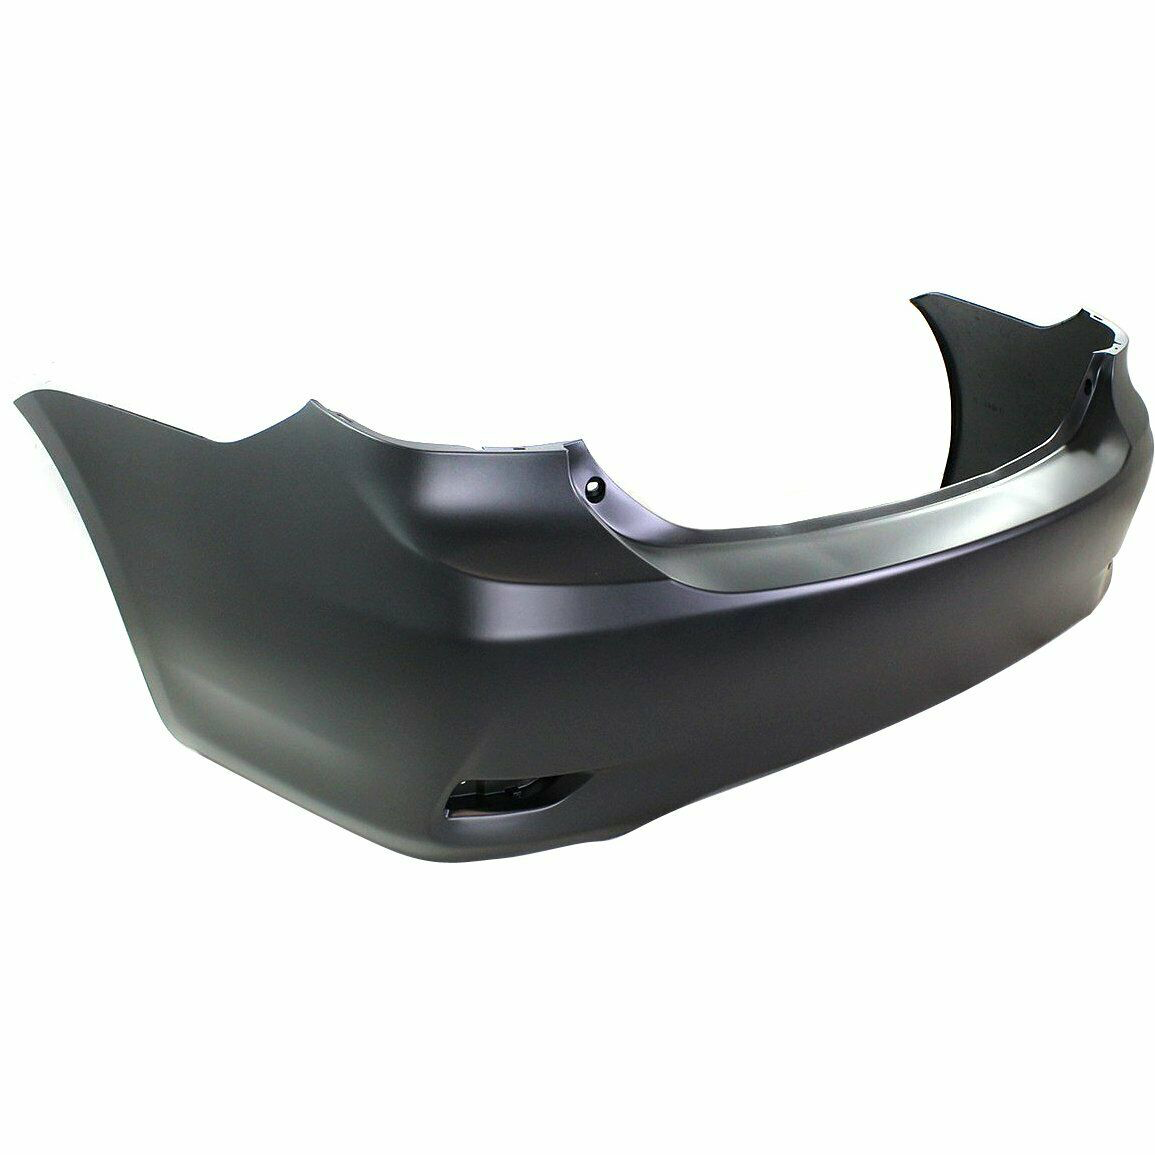 2011-2013 Toyota Corolla Rear Bumper Painted to Match